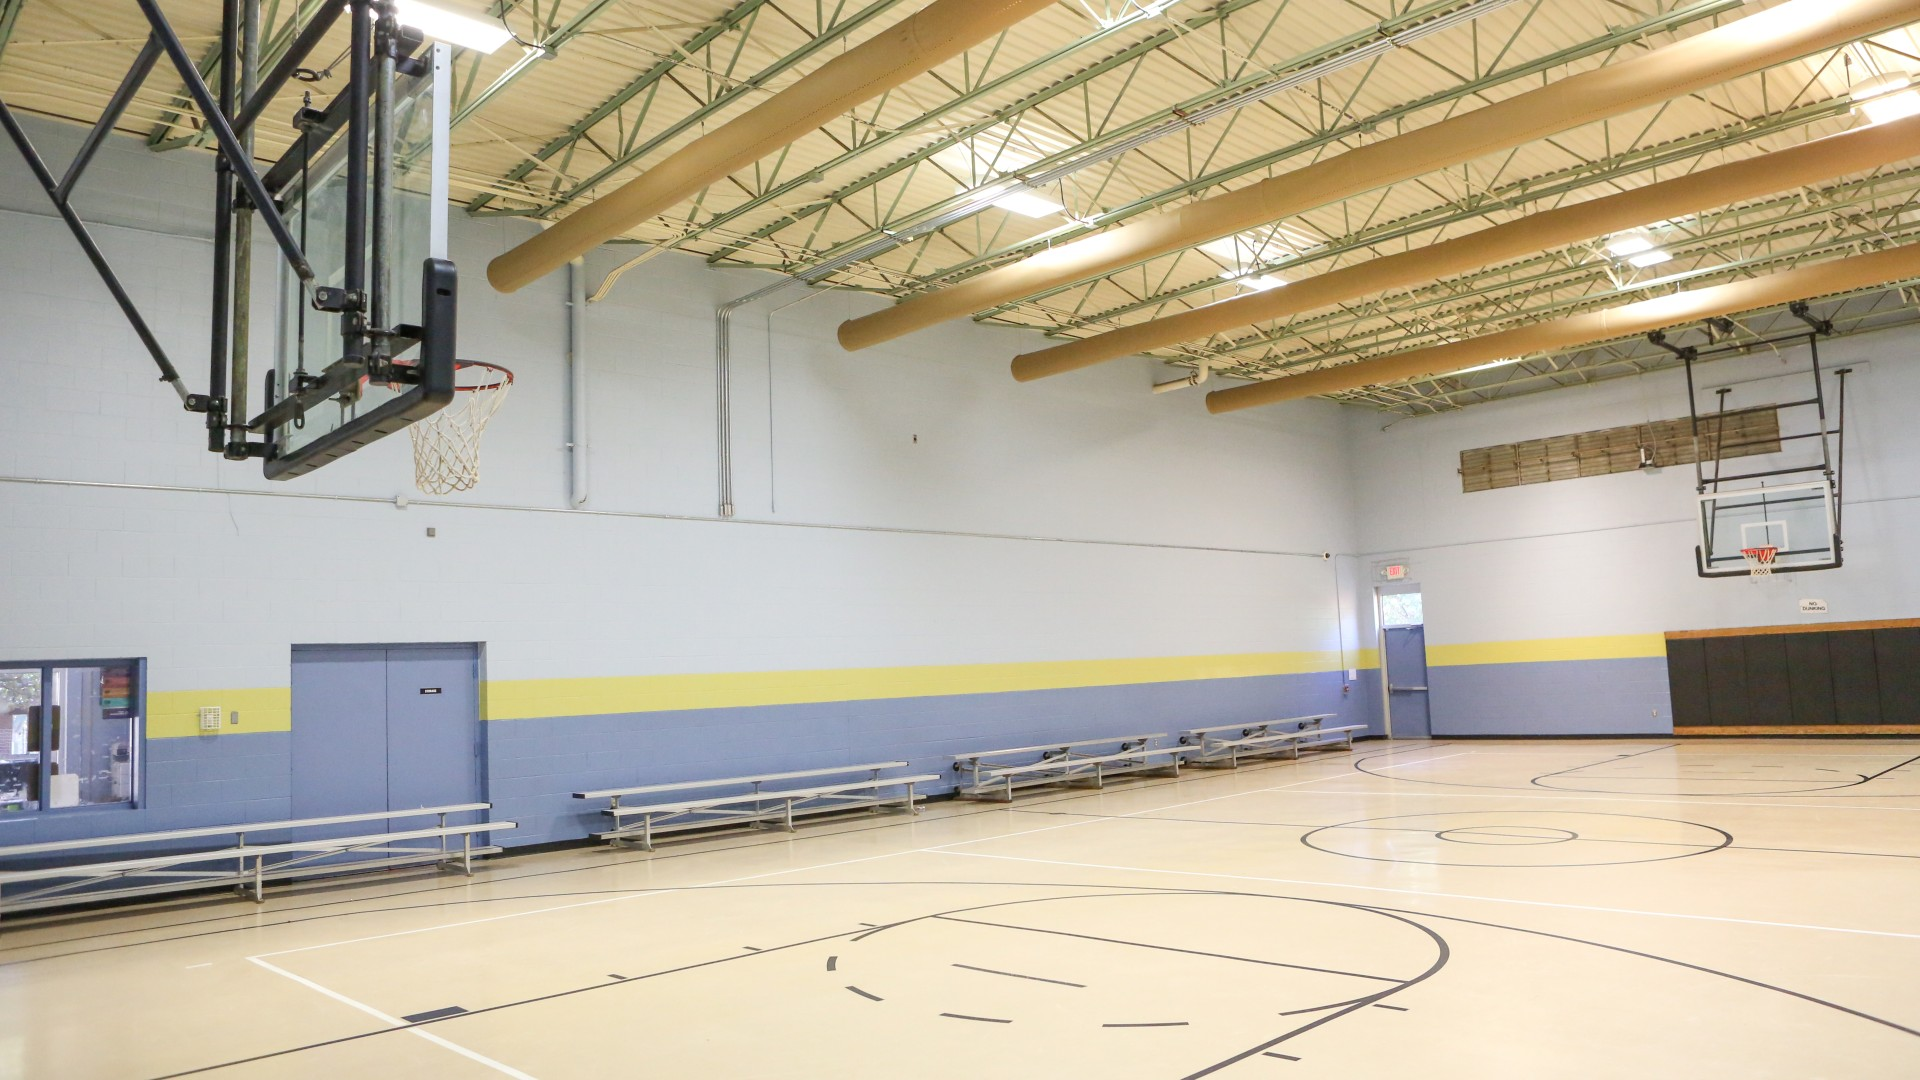 An indoor gymnasium with basketball court